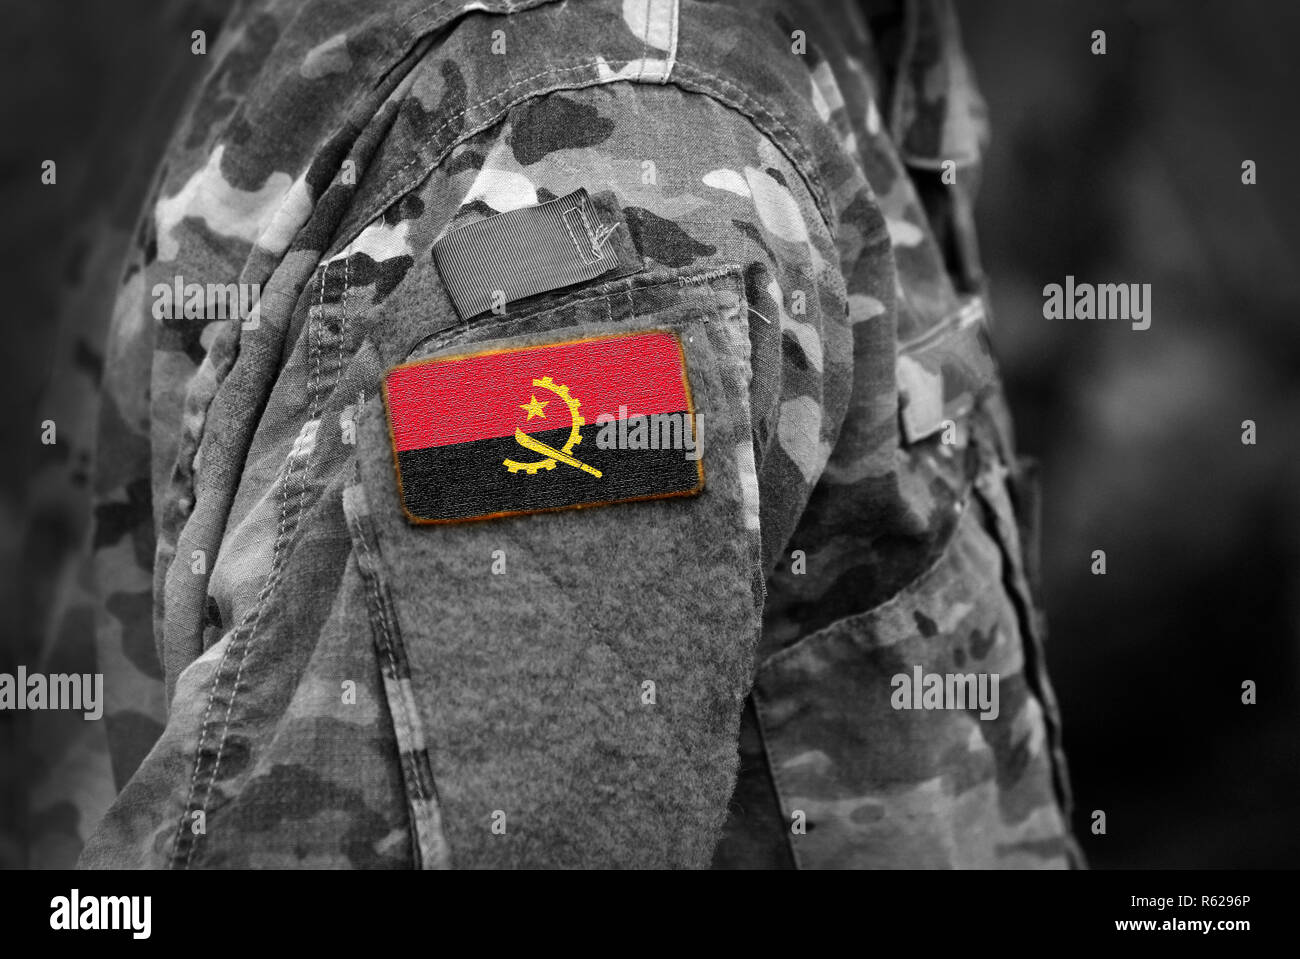 Flag of Angola on soldiers arm (collage). - Stock Image